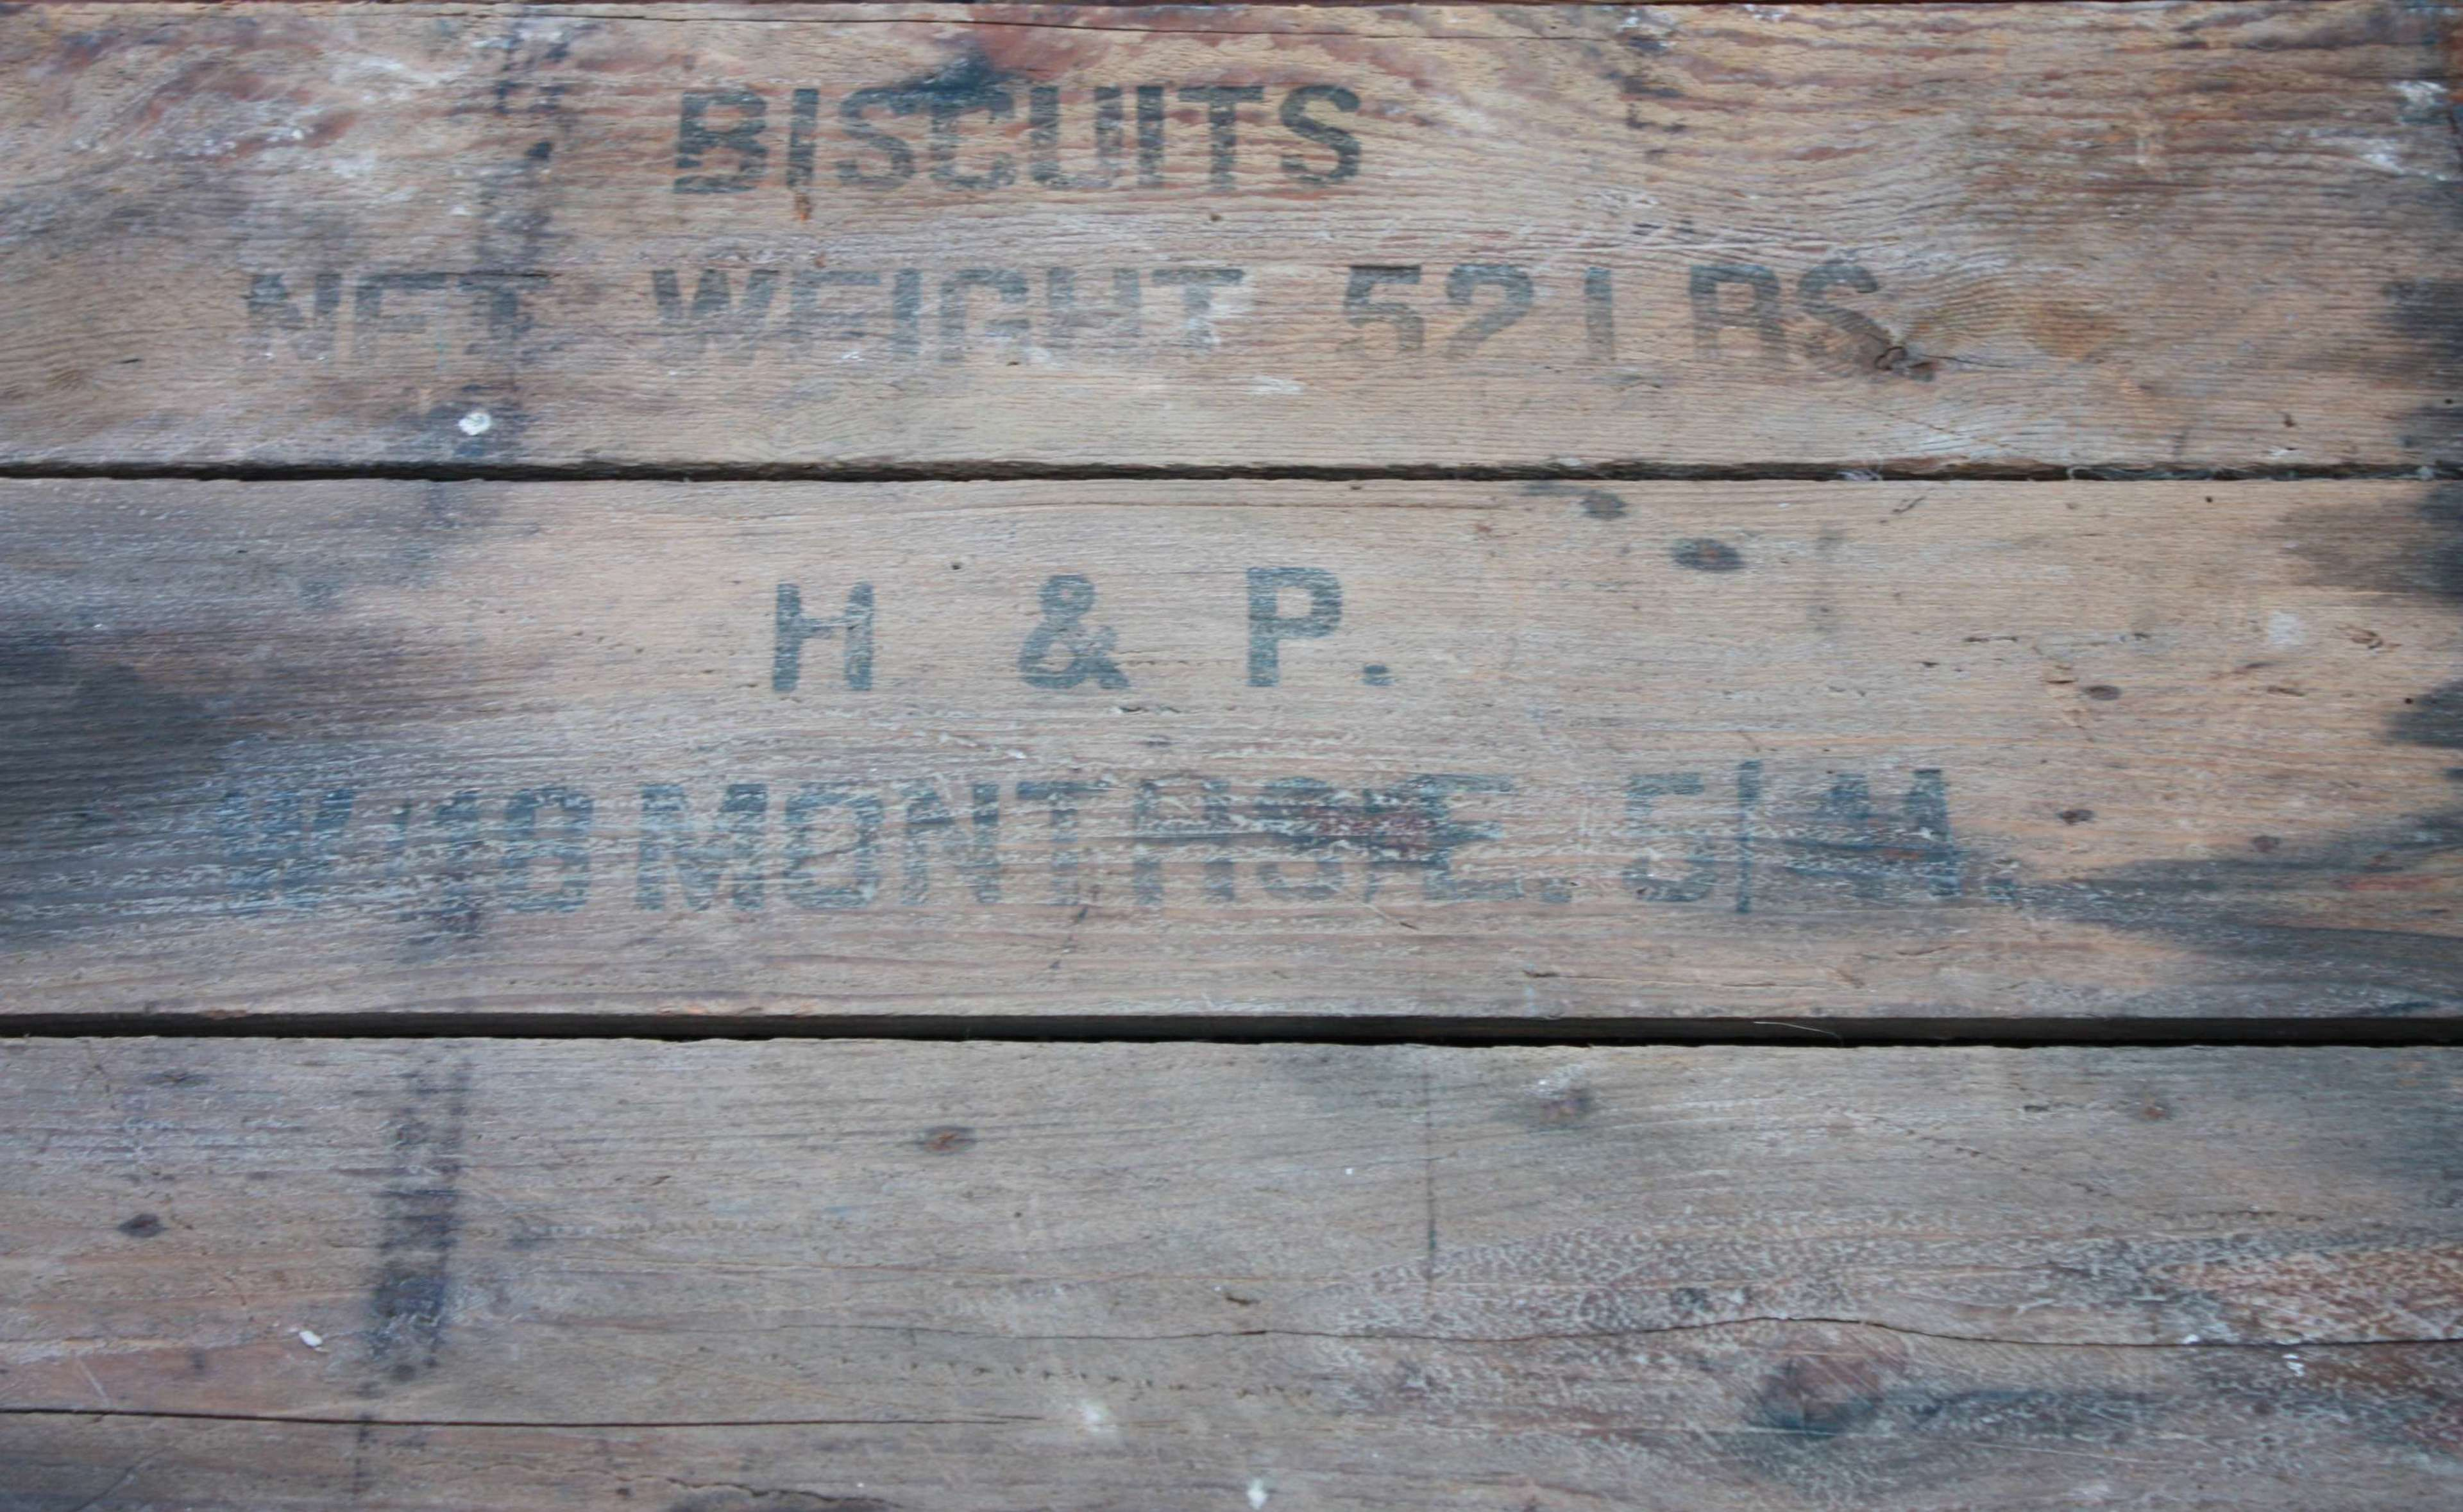 A 1944 DATED LARGE SIZE WOOD BISCUIT CREATE